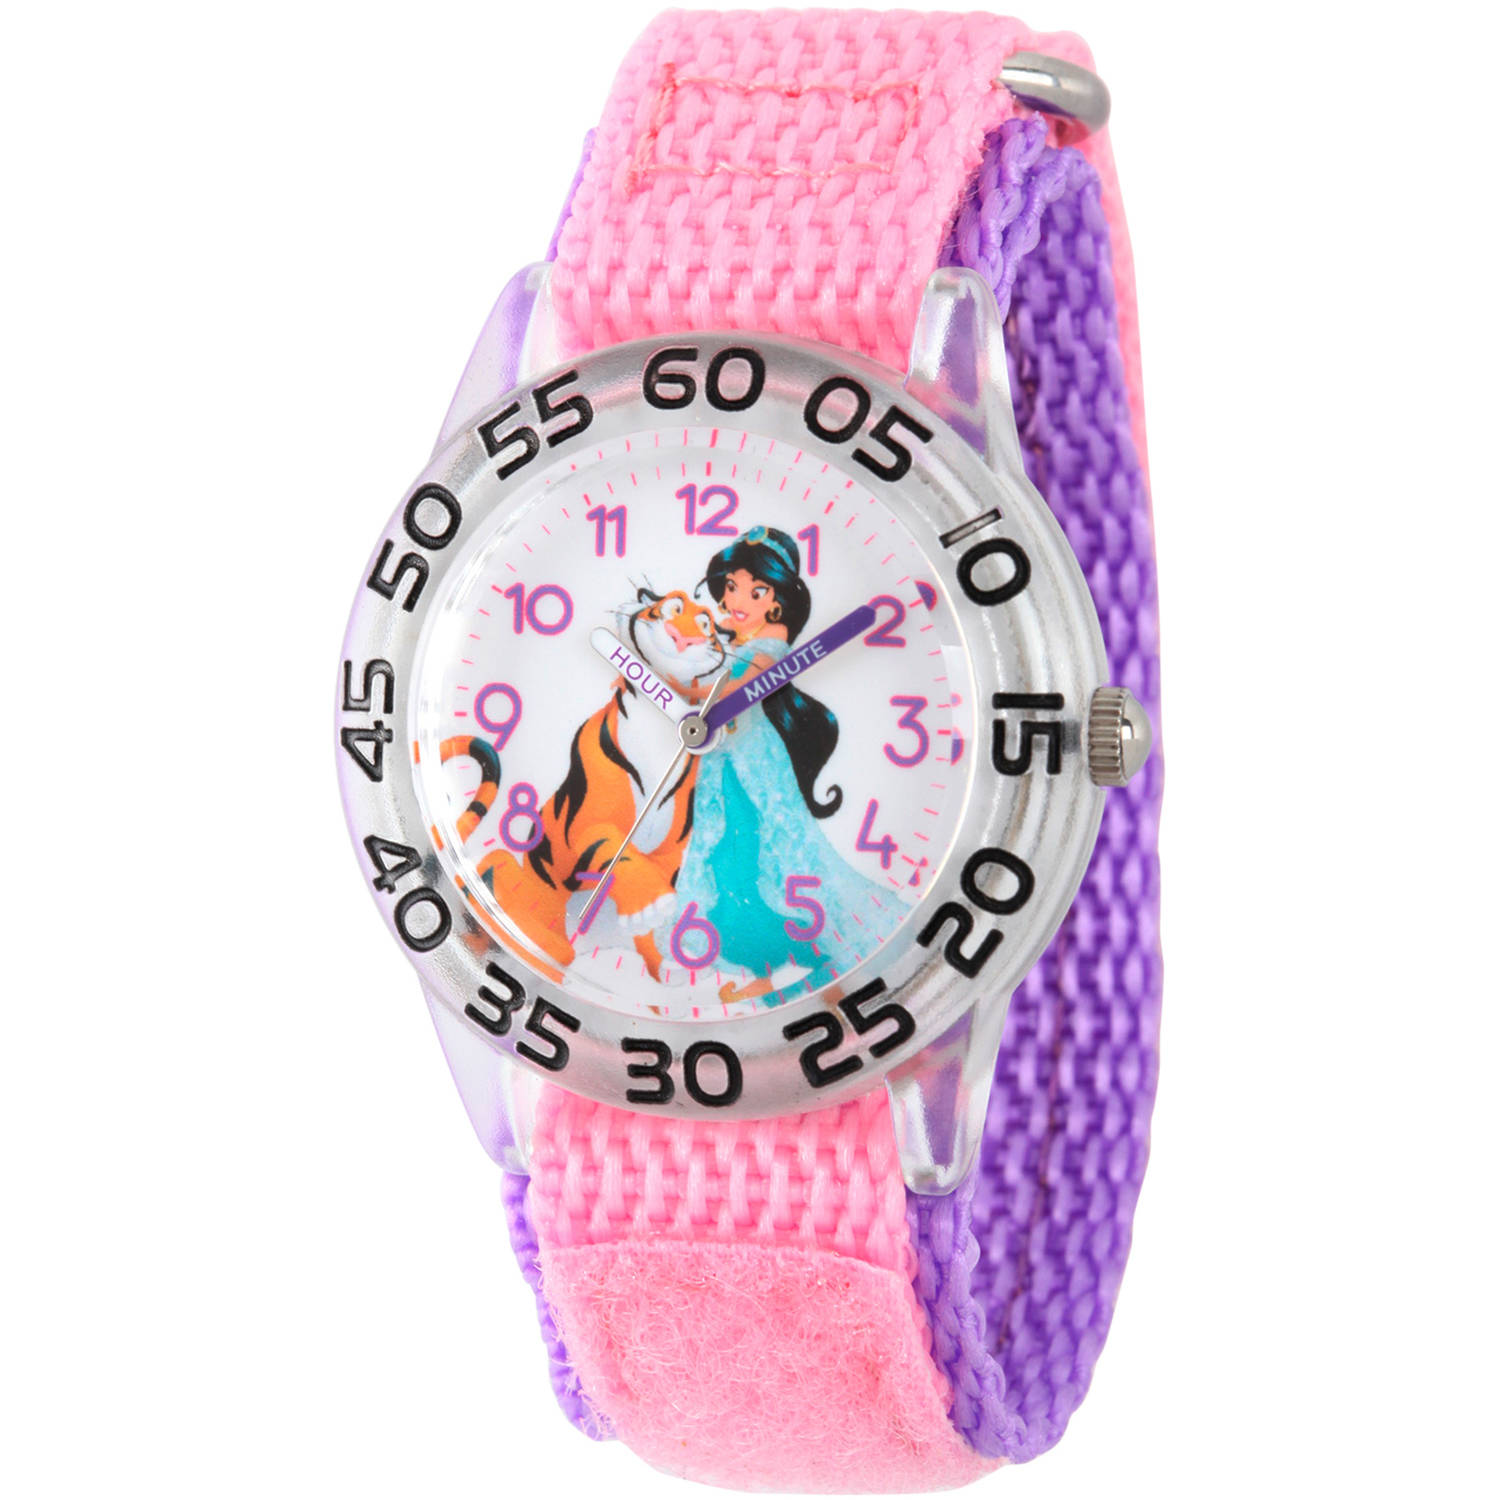 Disney Aladdin Jasmin and Rajah Girls' Plastic Time Teacher Watch, Pink Nylon Strap